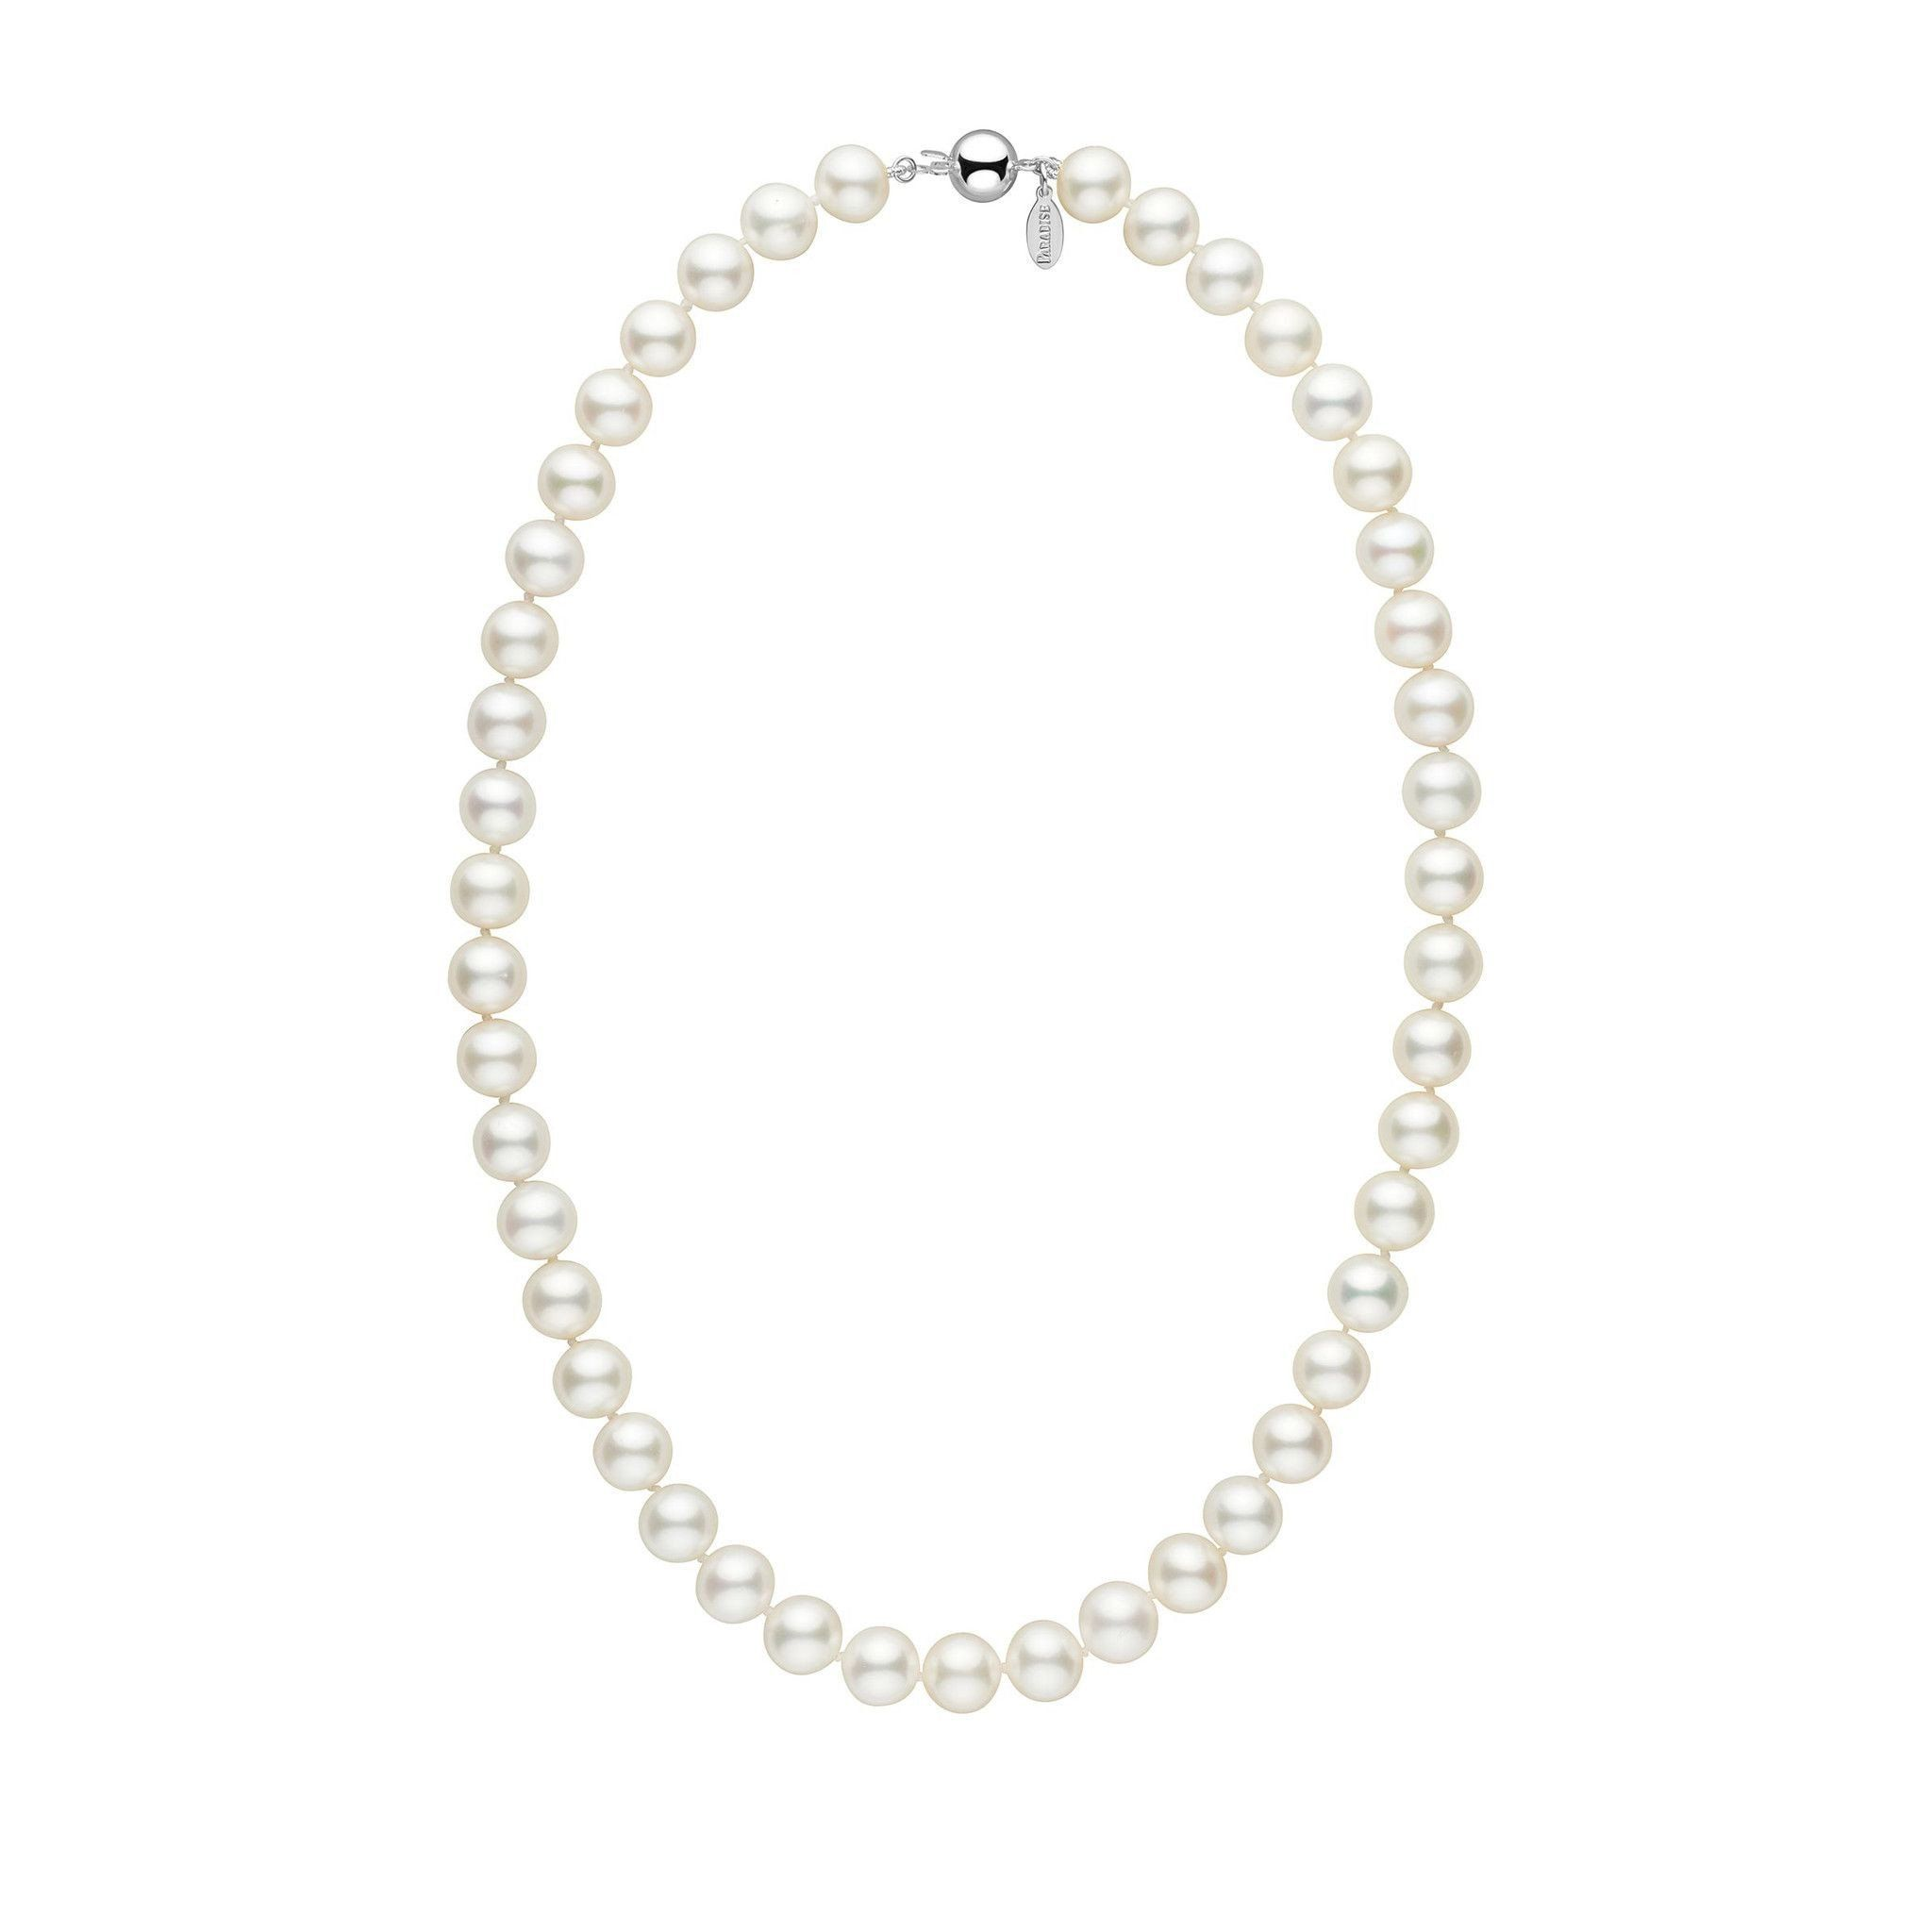 9.5-10.5 mm 18 Inch White Freshadama Freshwater Pearl Necklace